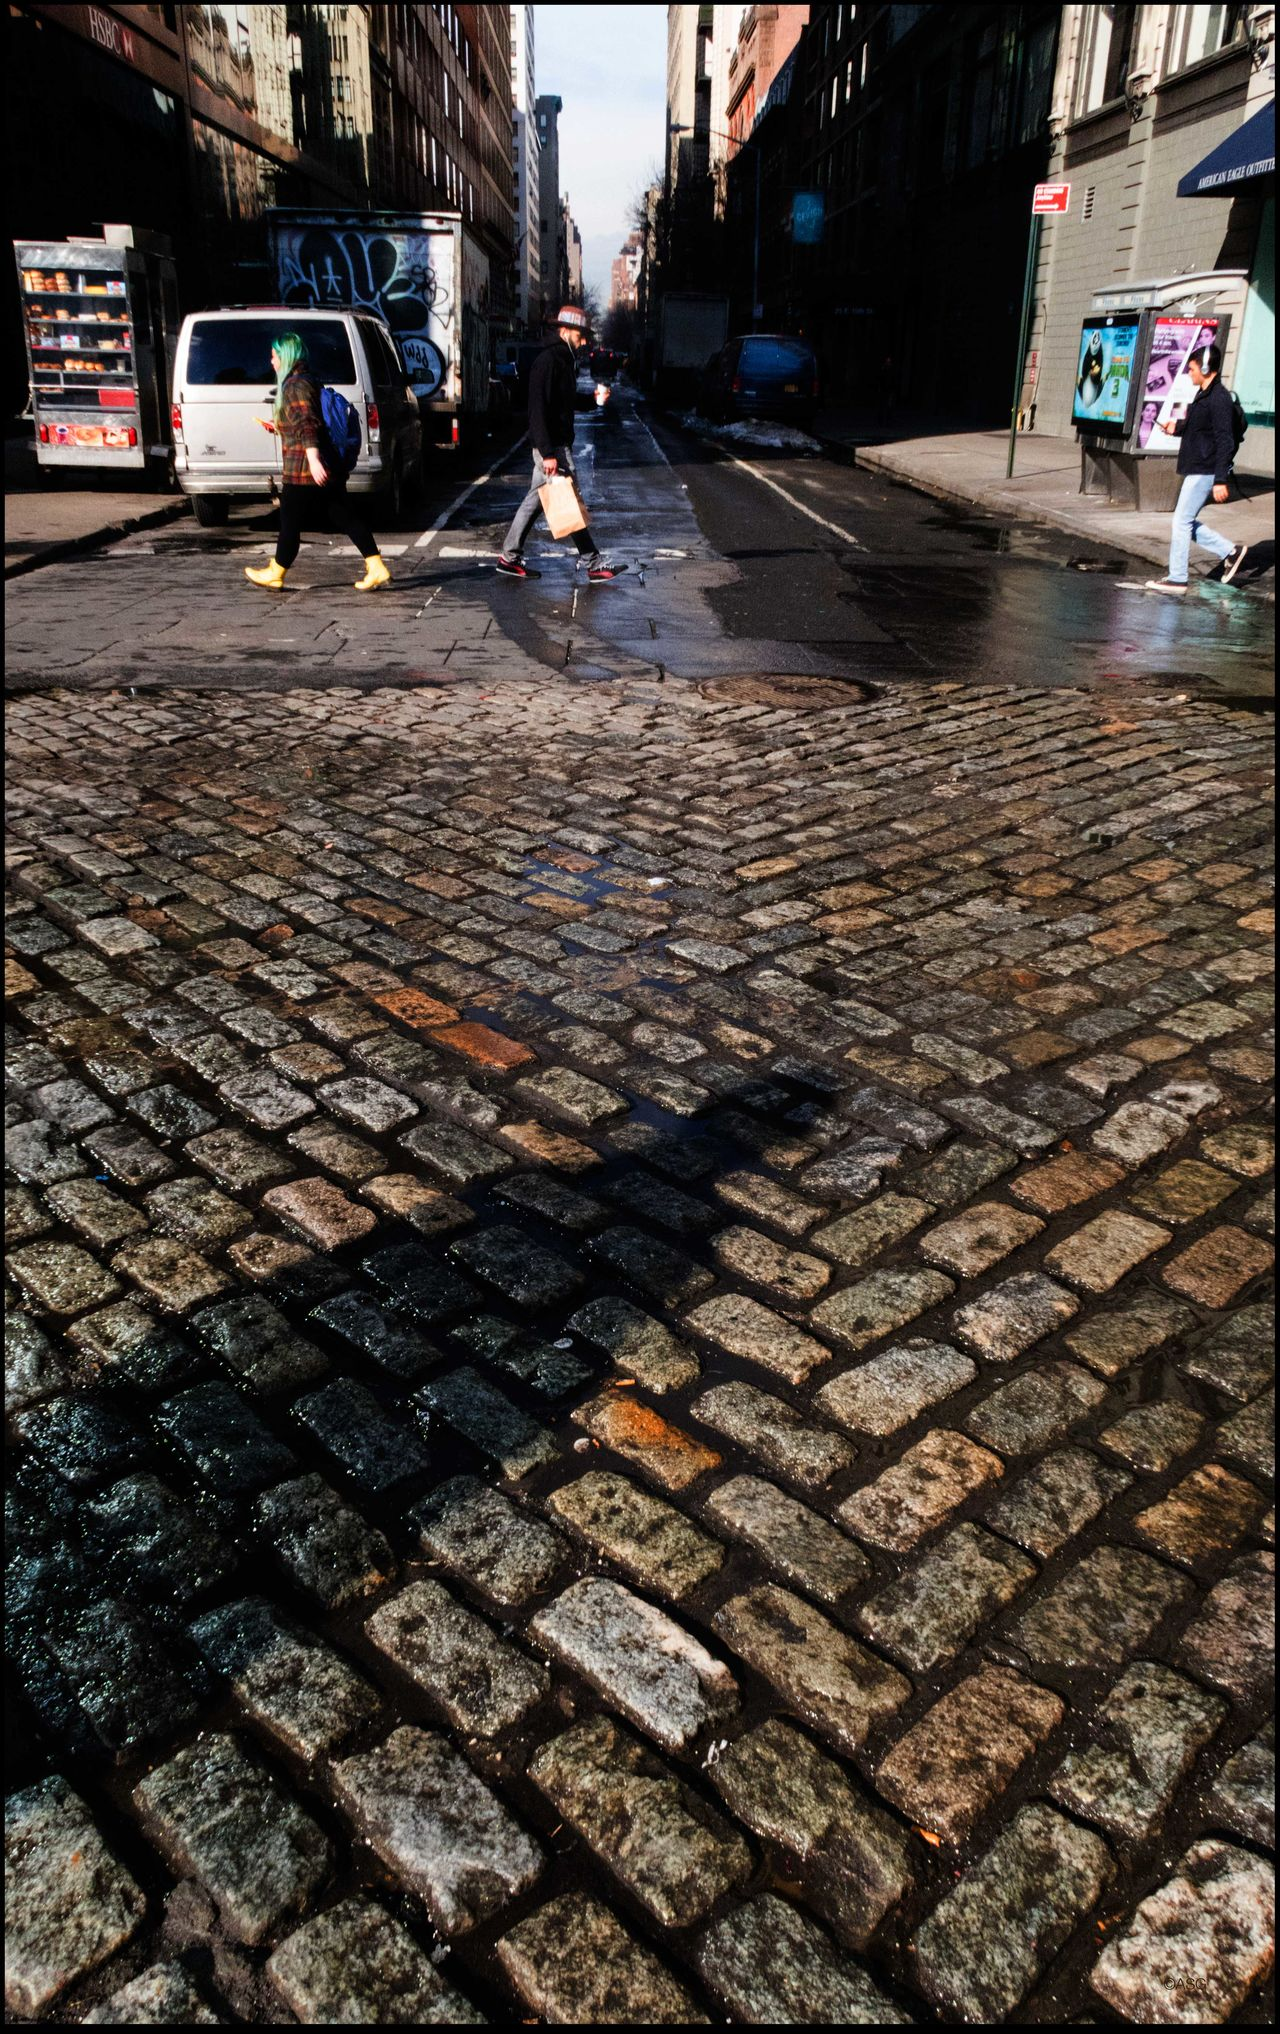 Walking on Cobblestones - 2/1/16 Cobblestone Man's Shadow Pattern People Walking  Street Photography NYC Street Vender Wet Streets